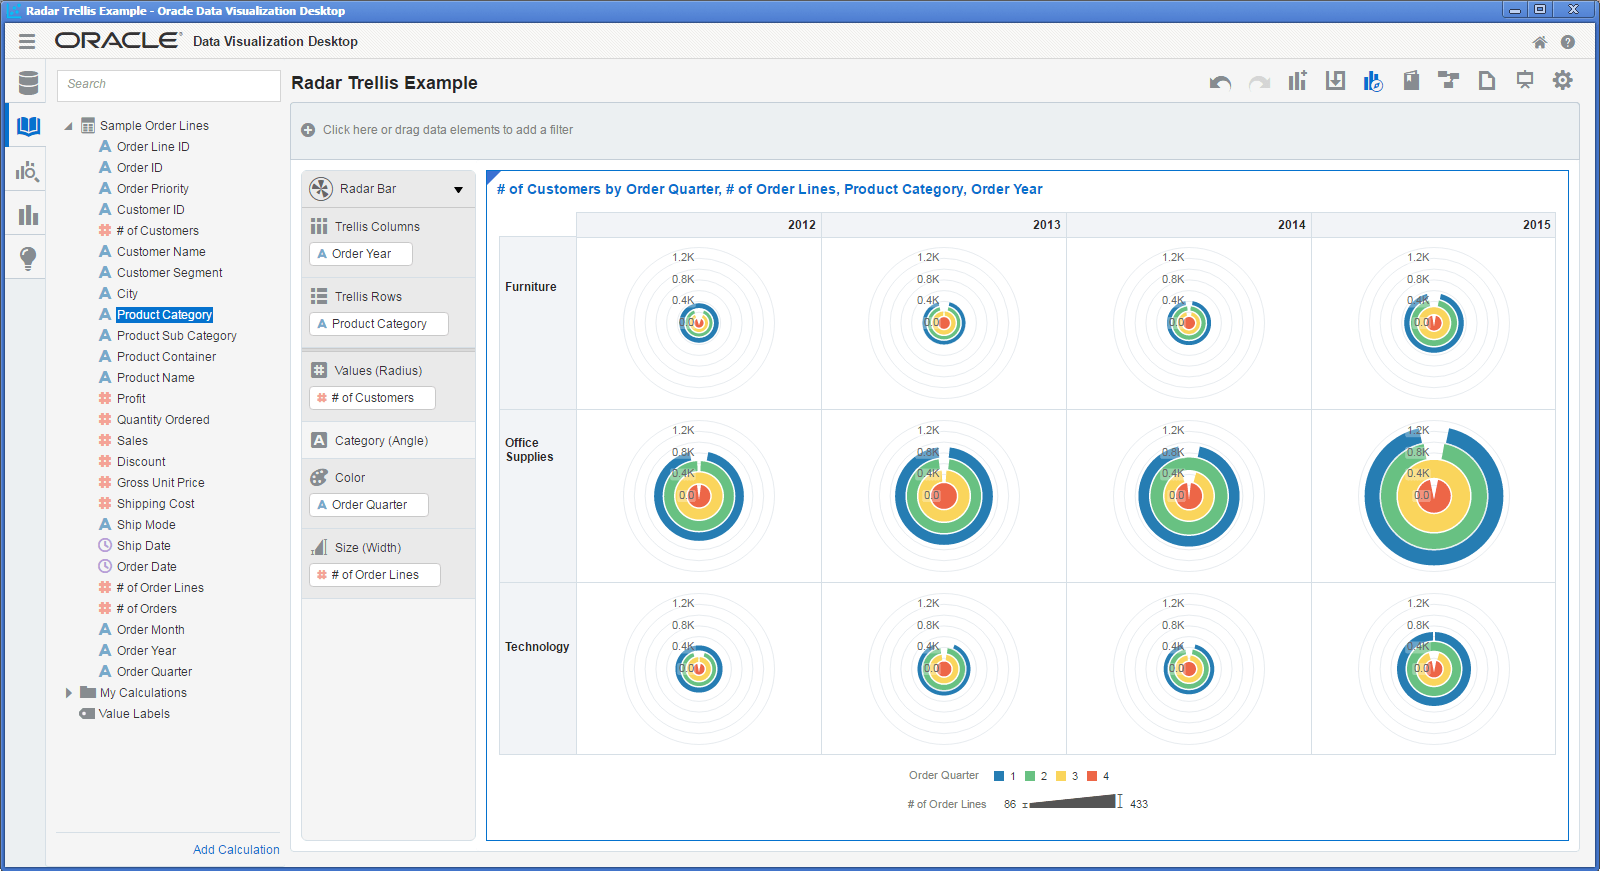 Oracle Data Visualization Desktop The Siebel Hub